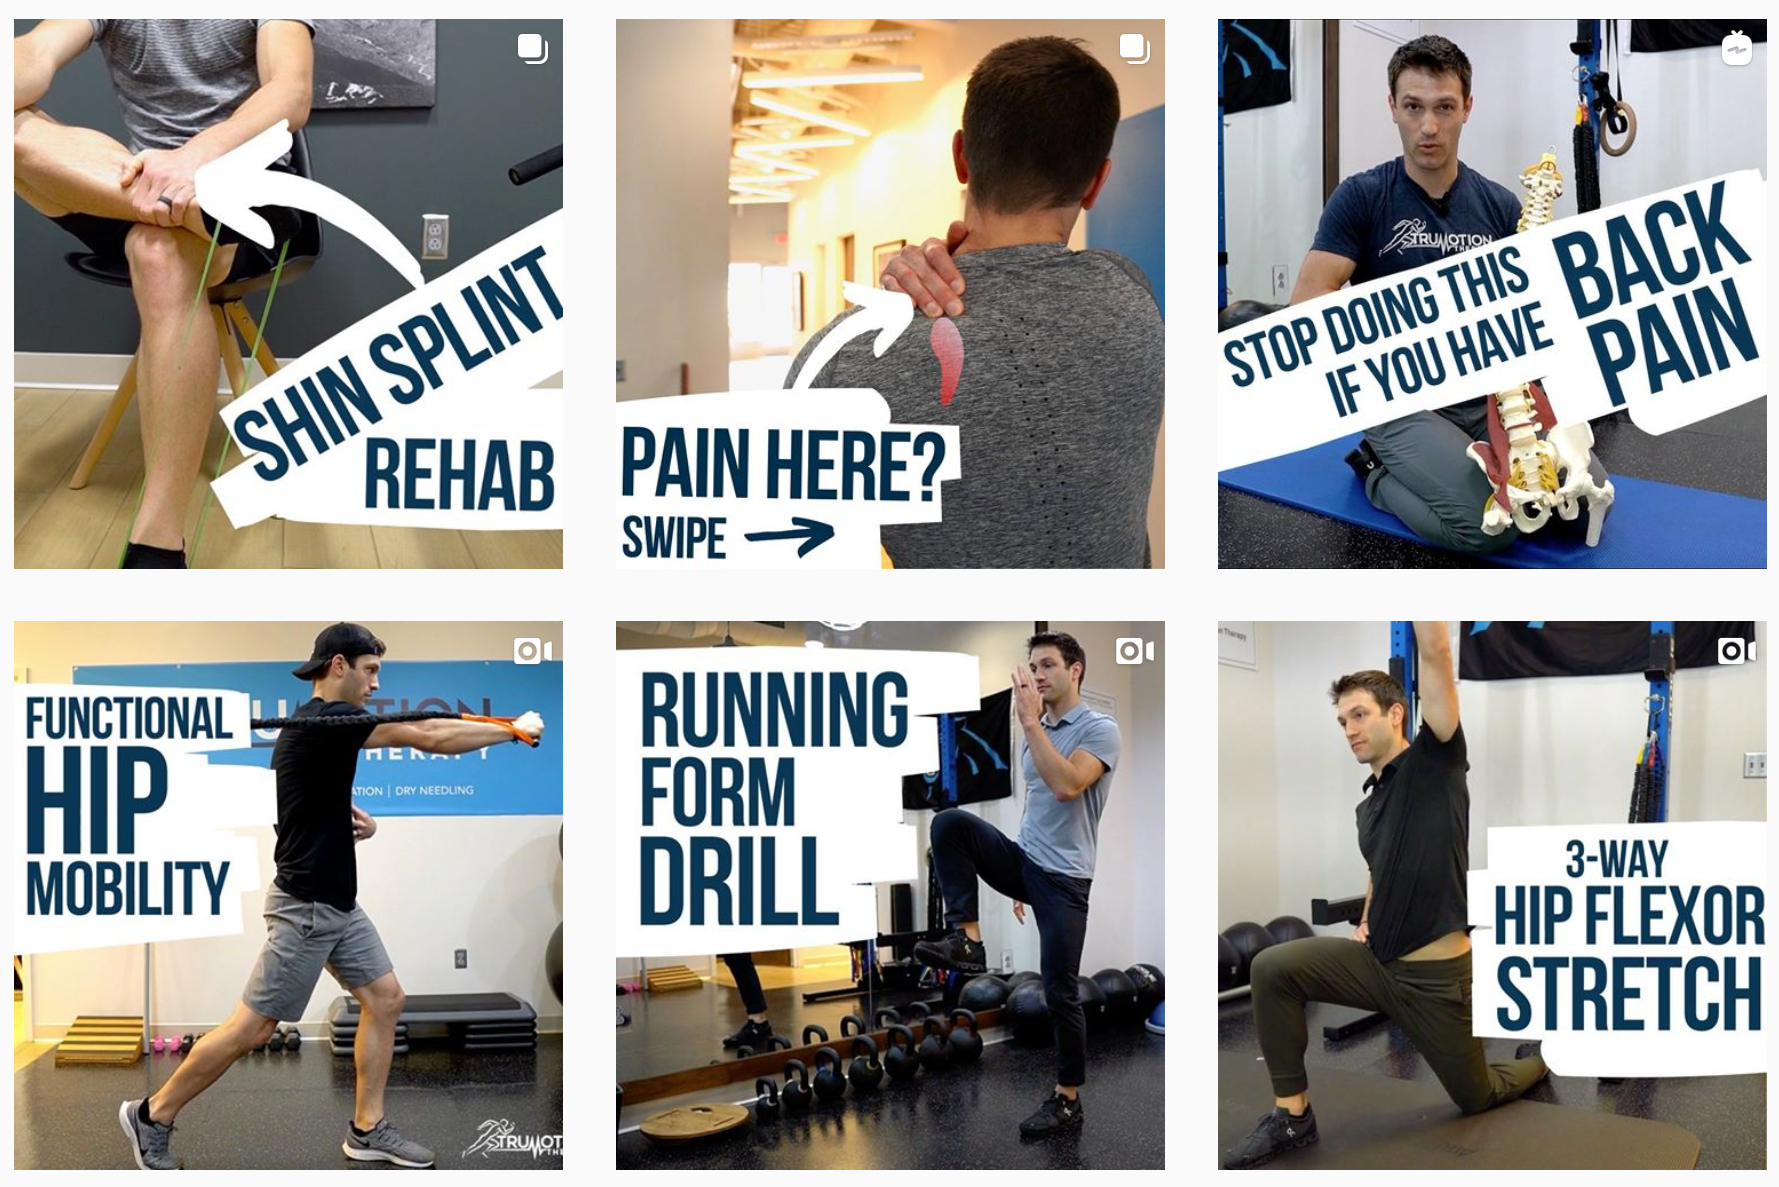 TruMotion Therapy Instagram Page